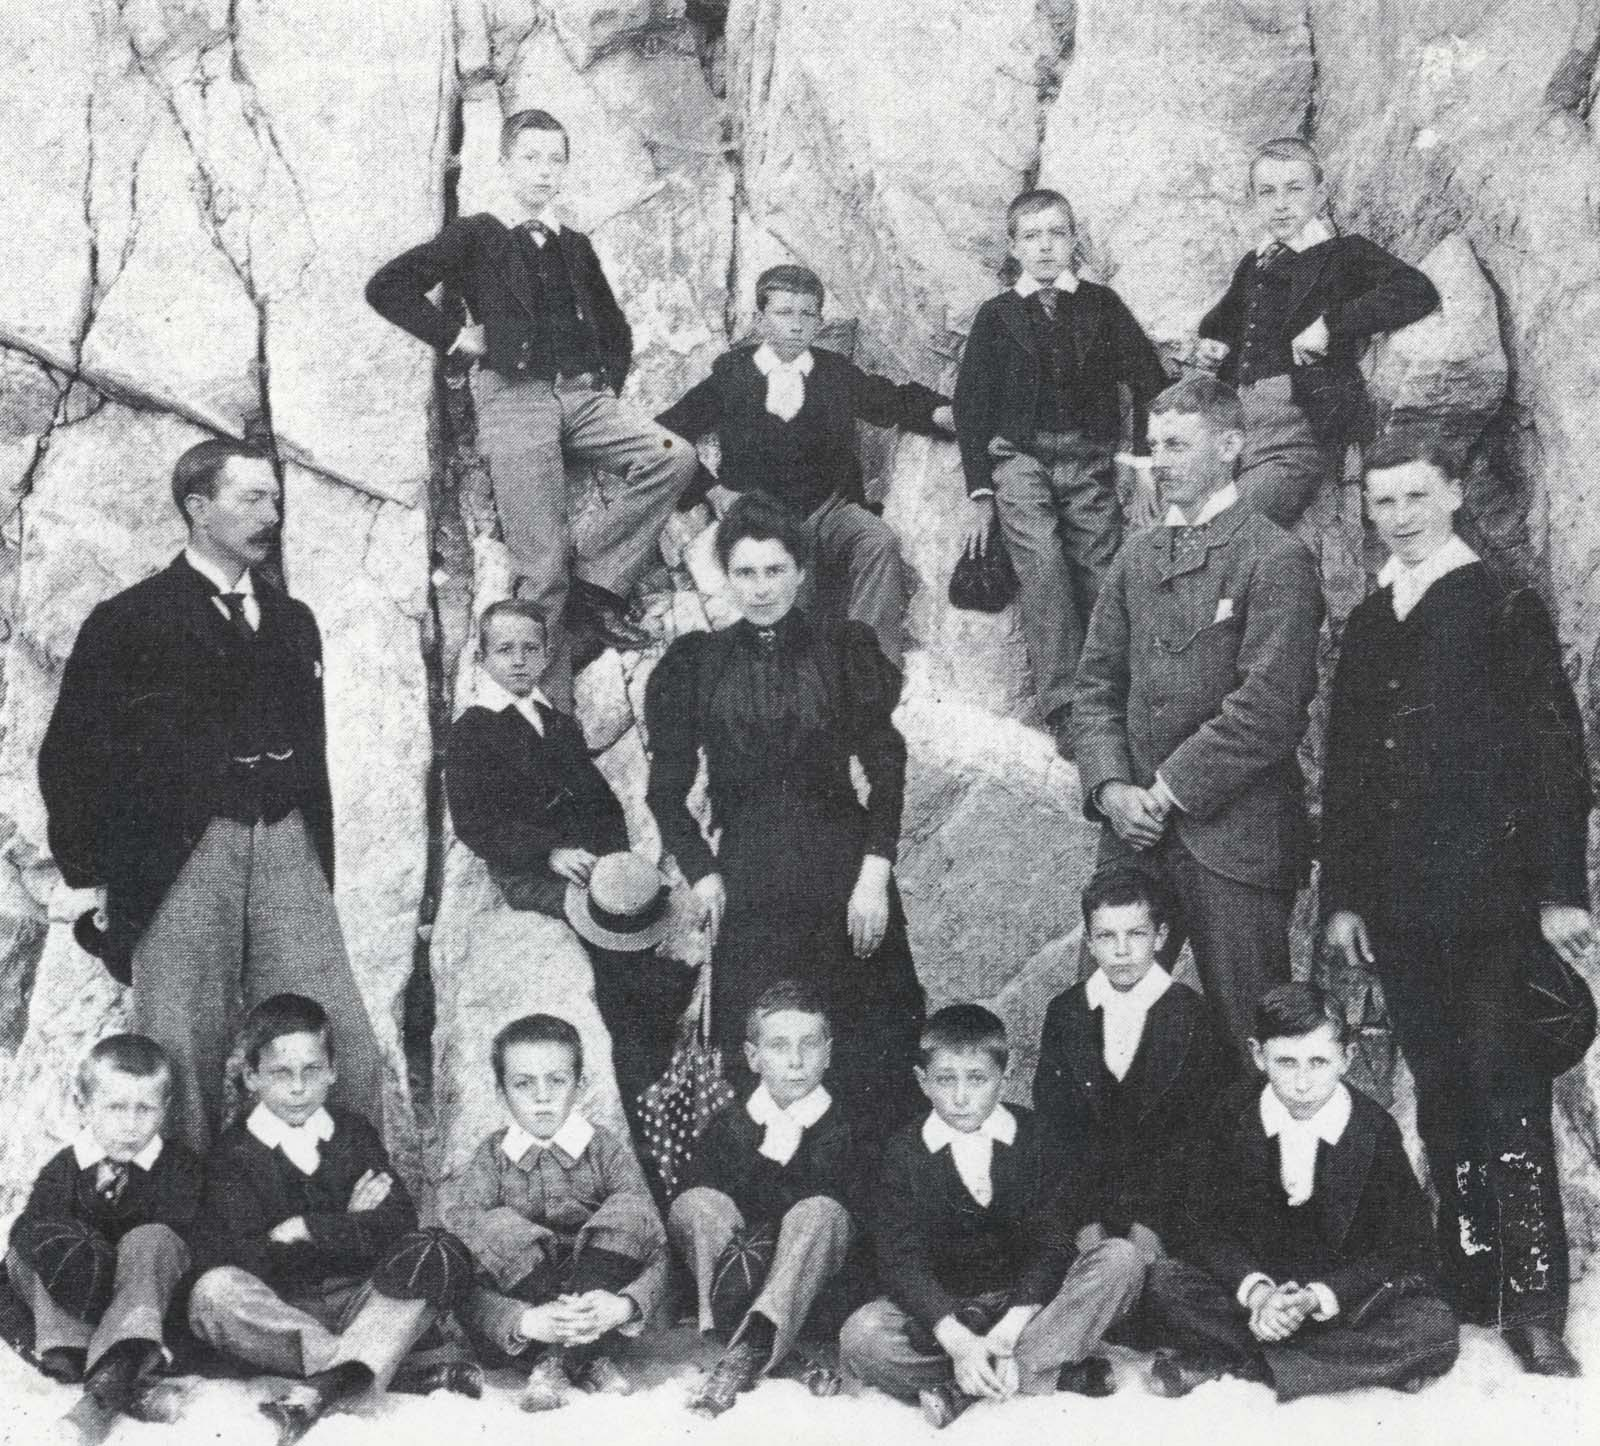 black and white school group photo of boys on a beach at the foot of cliffs with teachers